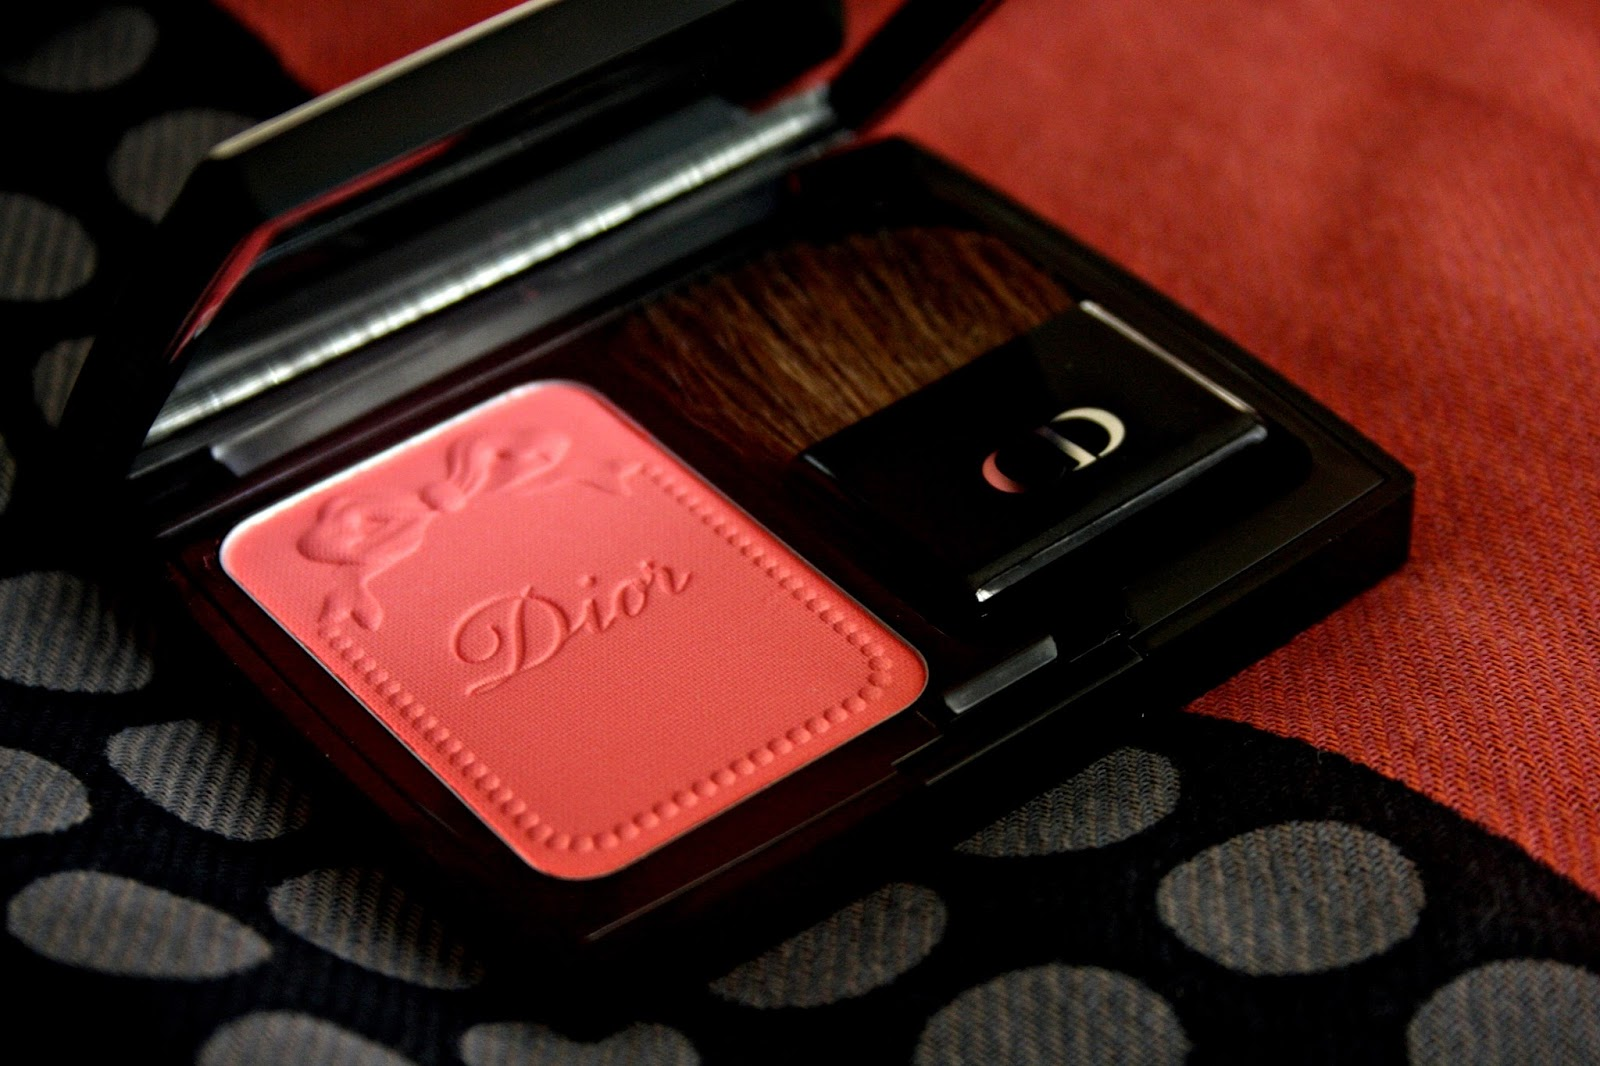 Dior Blush in Corail Bagatelle Dior Trianon Spring 2014 Collection Review, Photos & Swatches